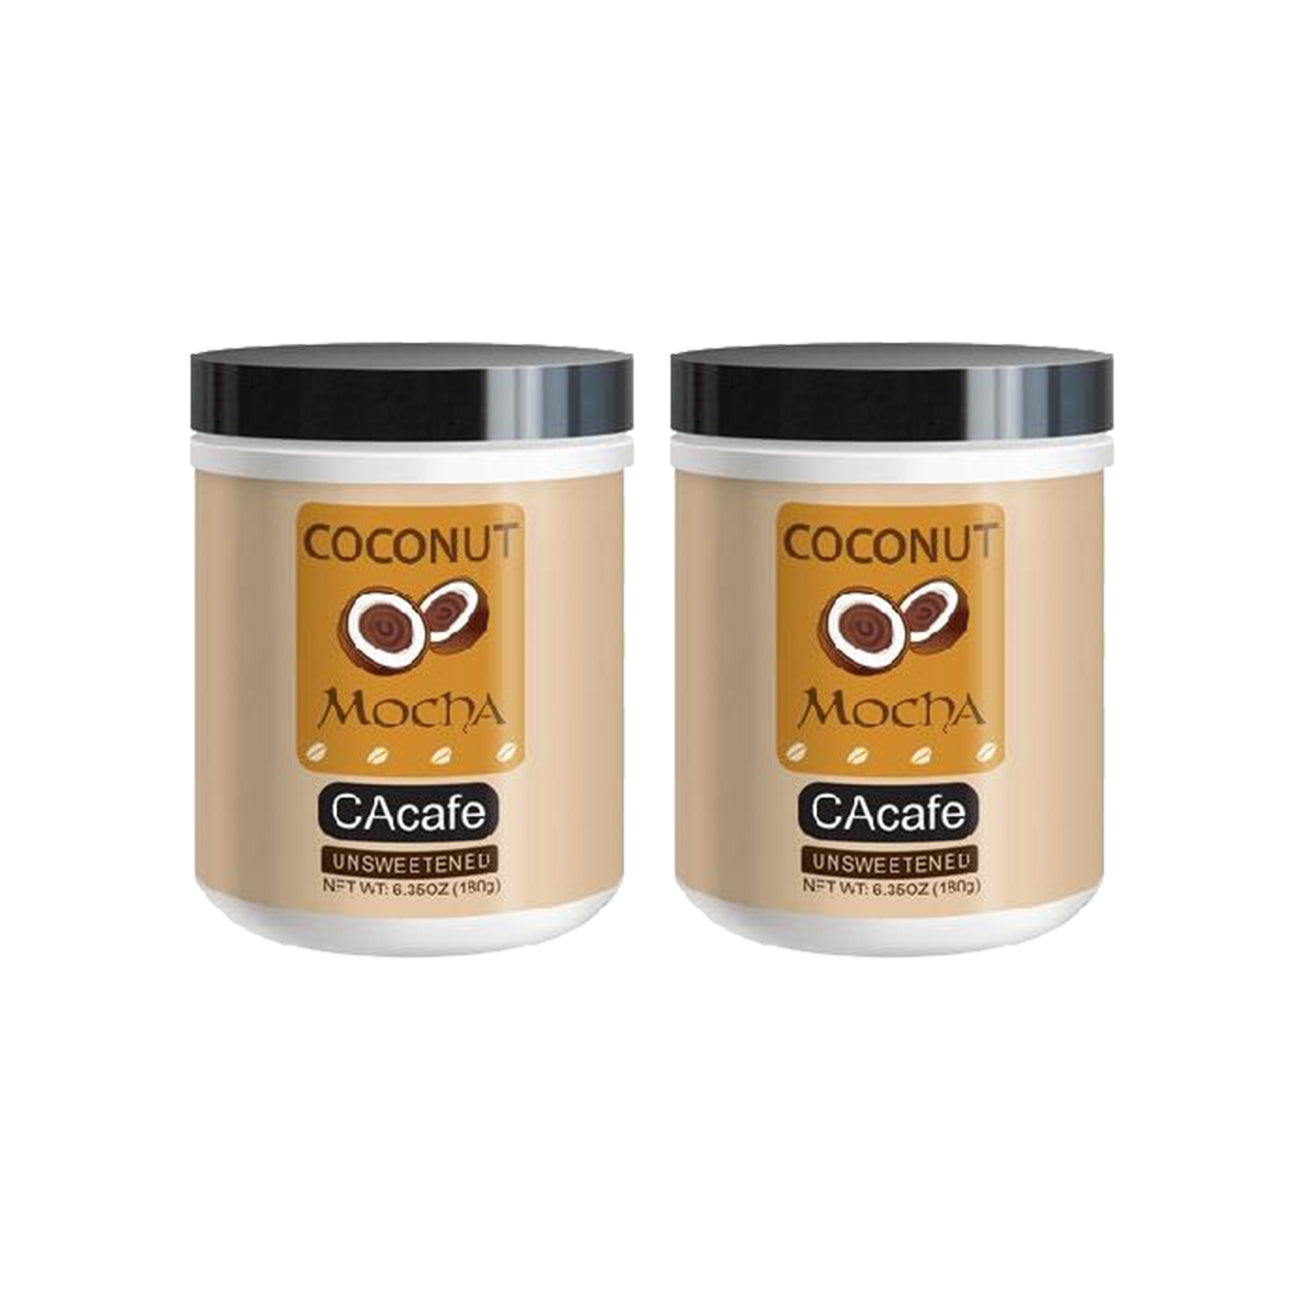 2-Pack Coconut Mocha Unsweetened 6.35oz